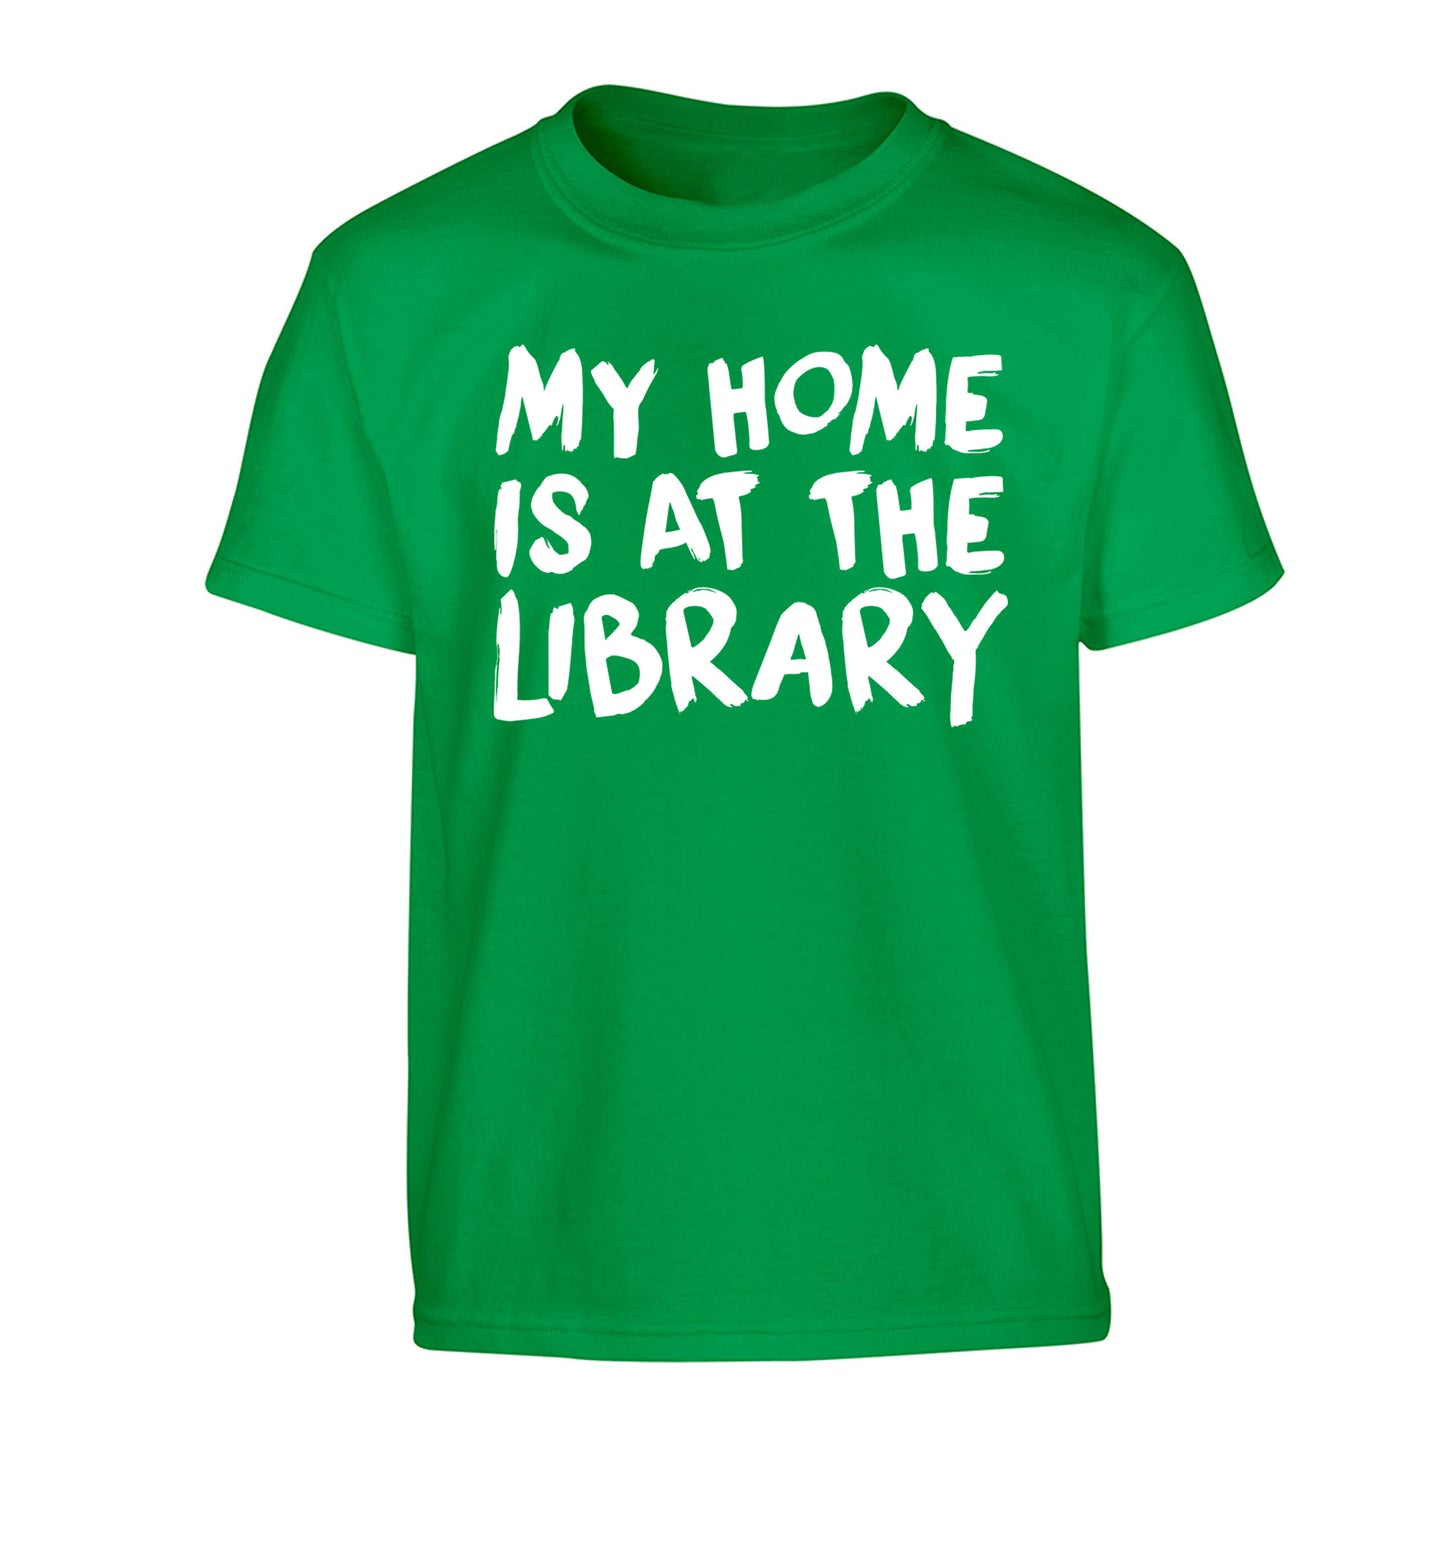 My home is at the library Children's green Tshirt 12-14 Years